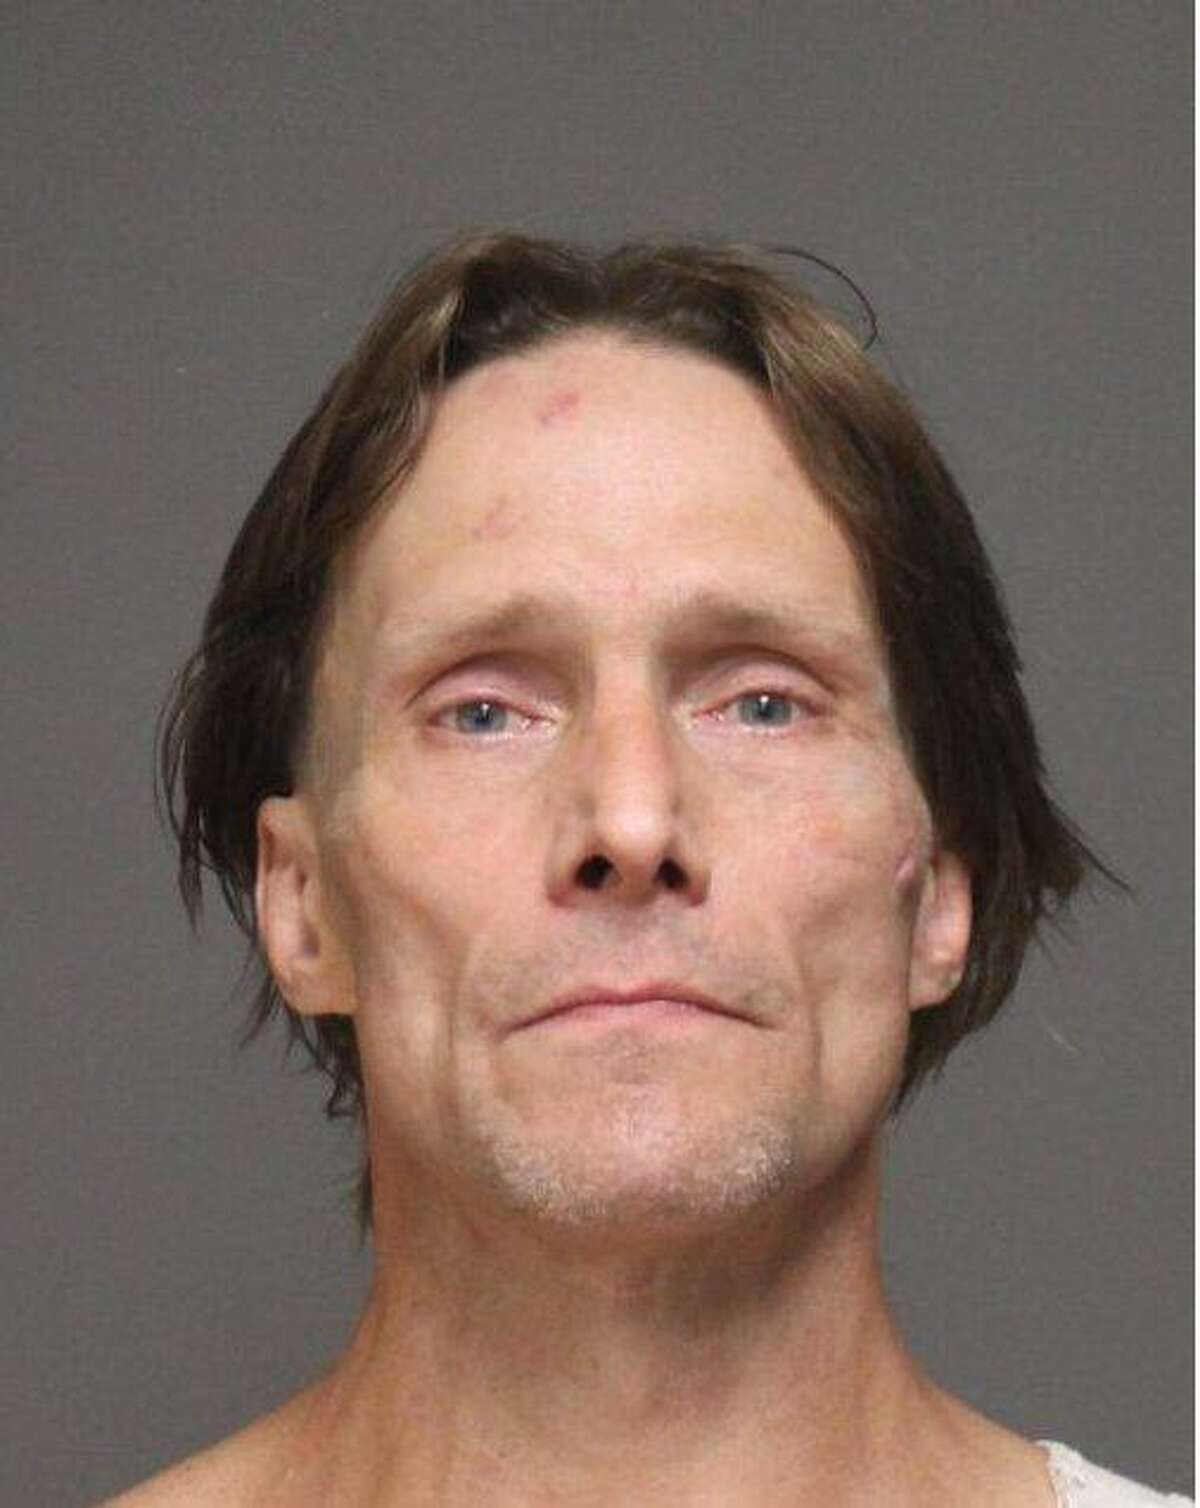 Joseph Palmer, 50, was charged for an alleged hit-and-run at a party that resulted in a person suffering a broken foot and ankle, according to police.